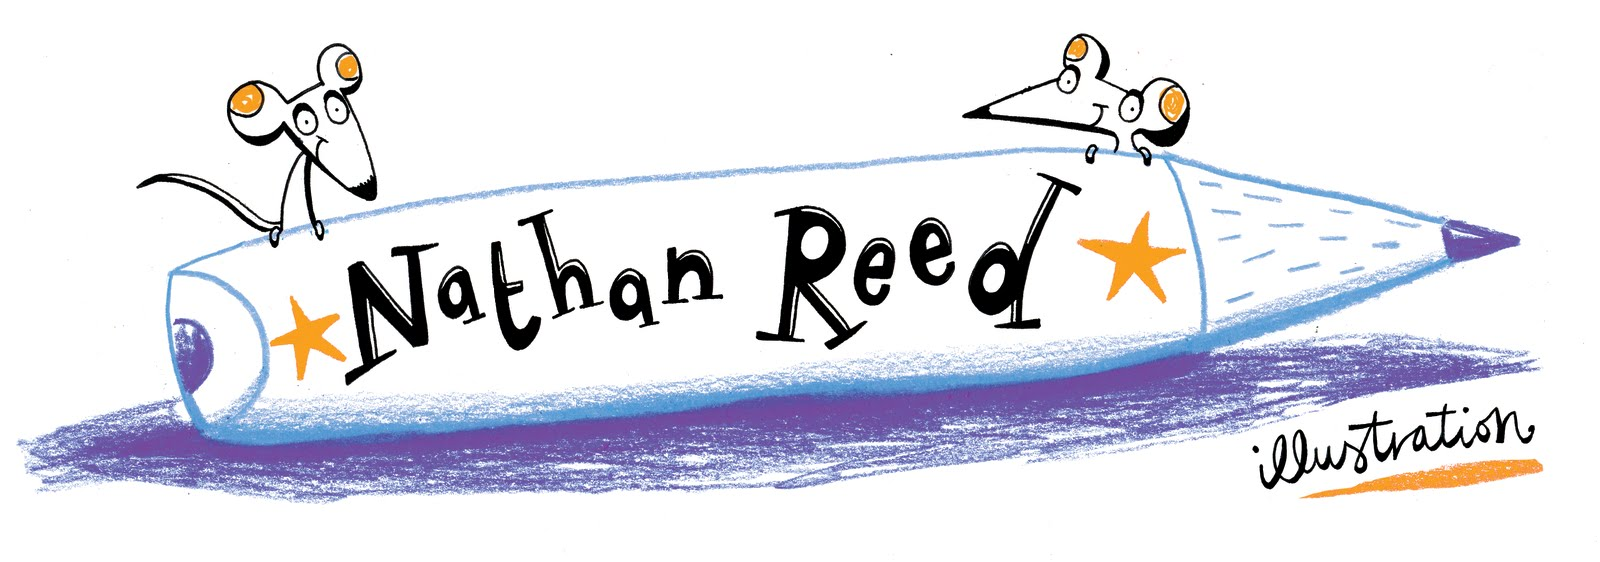 Nathan Reed Illustration